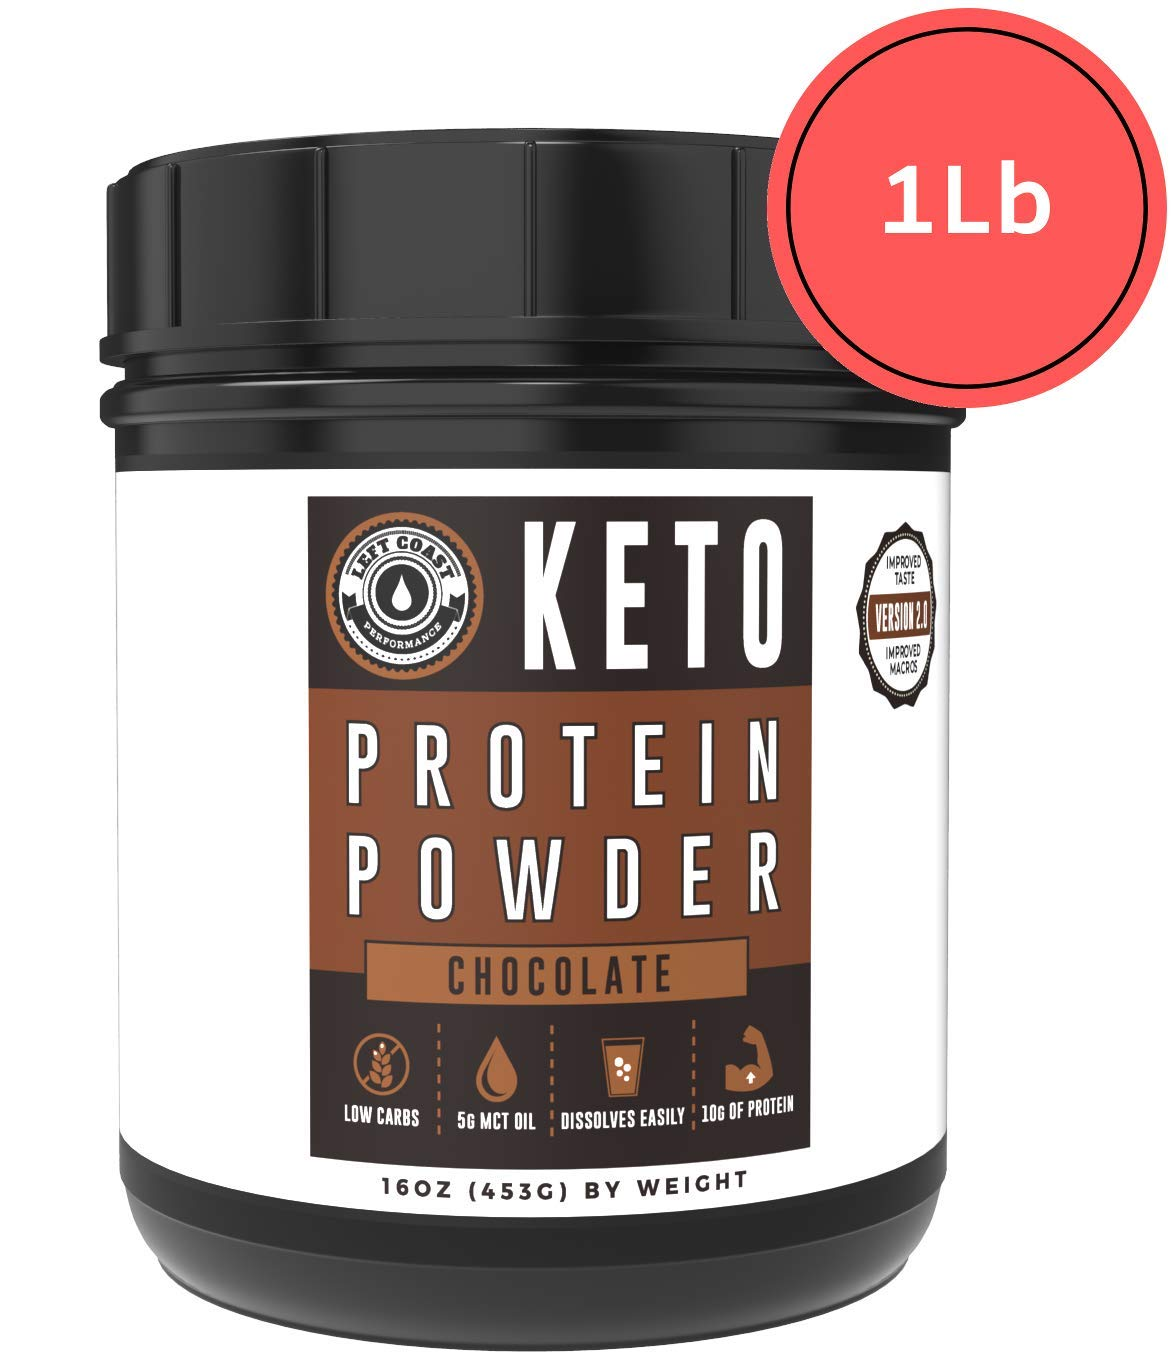 Keto Collagen Protein Powder Chocolate - MCT Powder, Grass-Fed Collagen| 1lb, 25 Servings, No Carb Protein Powder, Low Carb Meal Replacement Shakes, Ketogenic Shake Mix | Left Coast Performance by Left Coast Performance